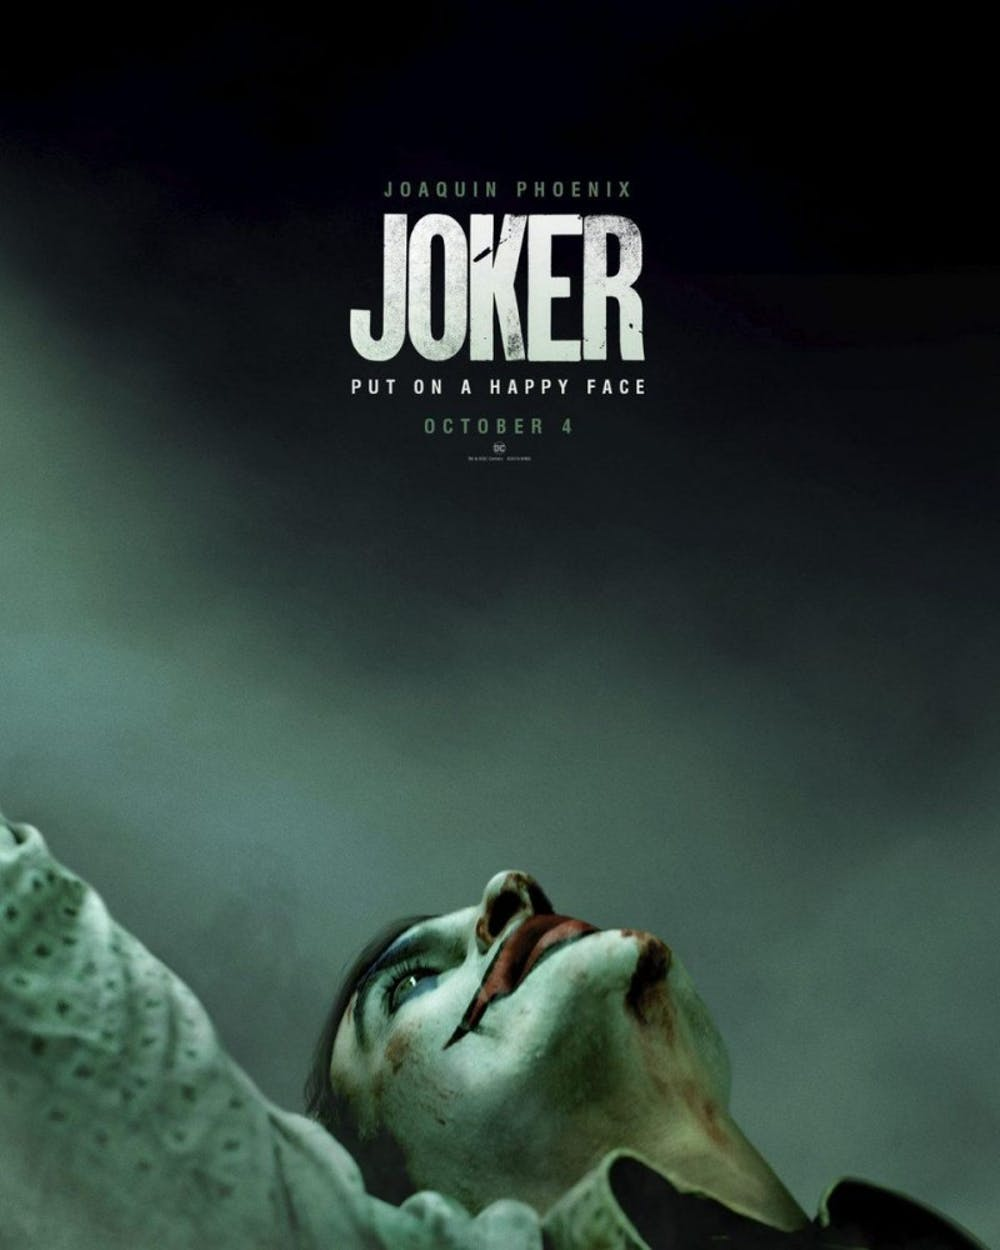 First Trailer For Joker Shows Dark Daring And Realistic